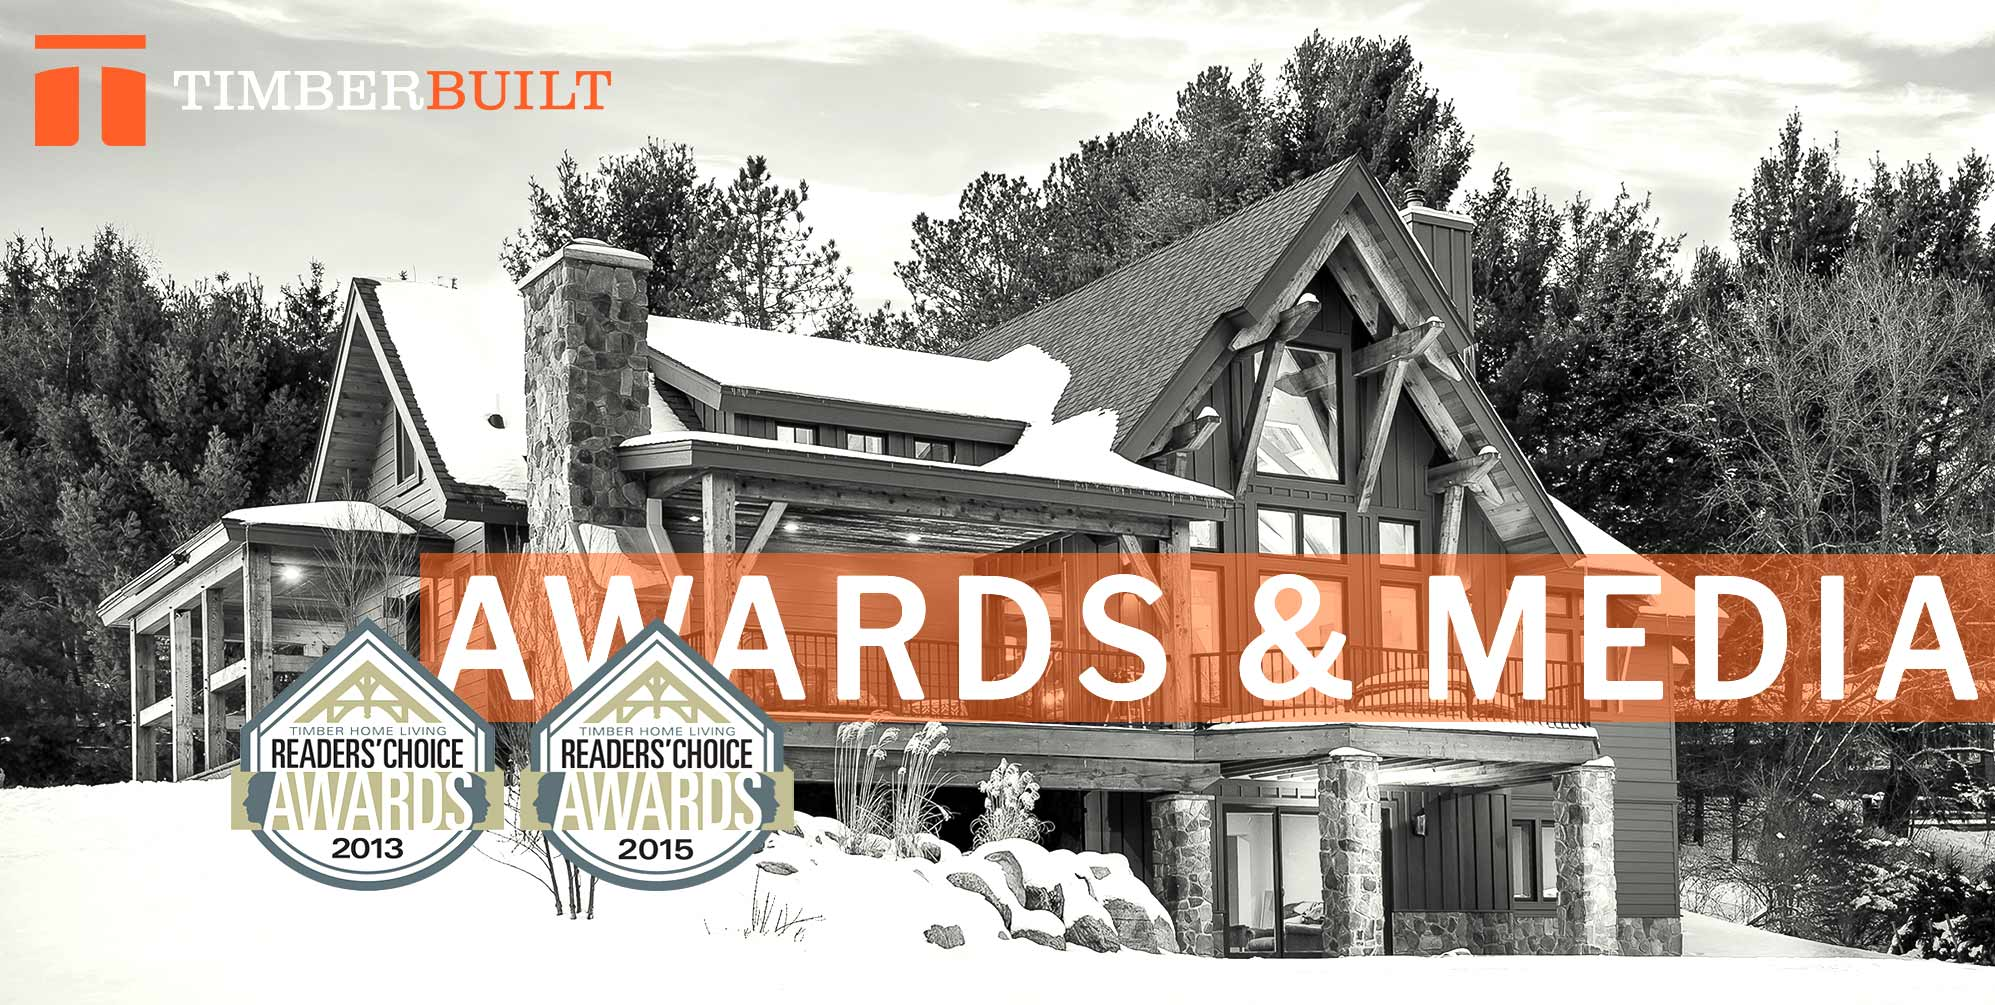 Timber frame home with award badges superimposed over it.